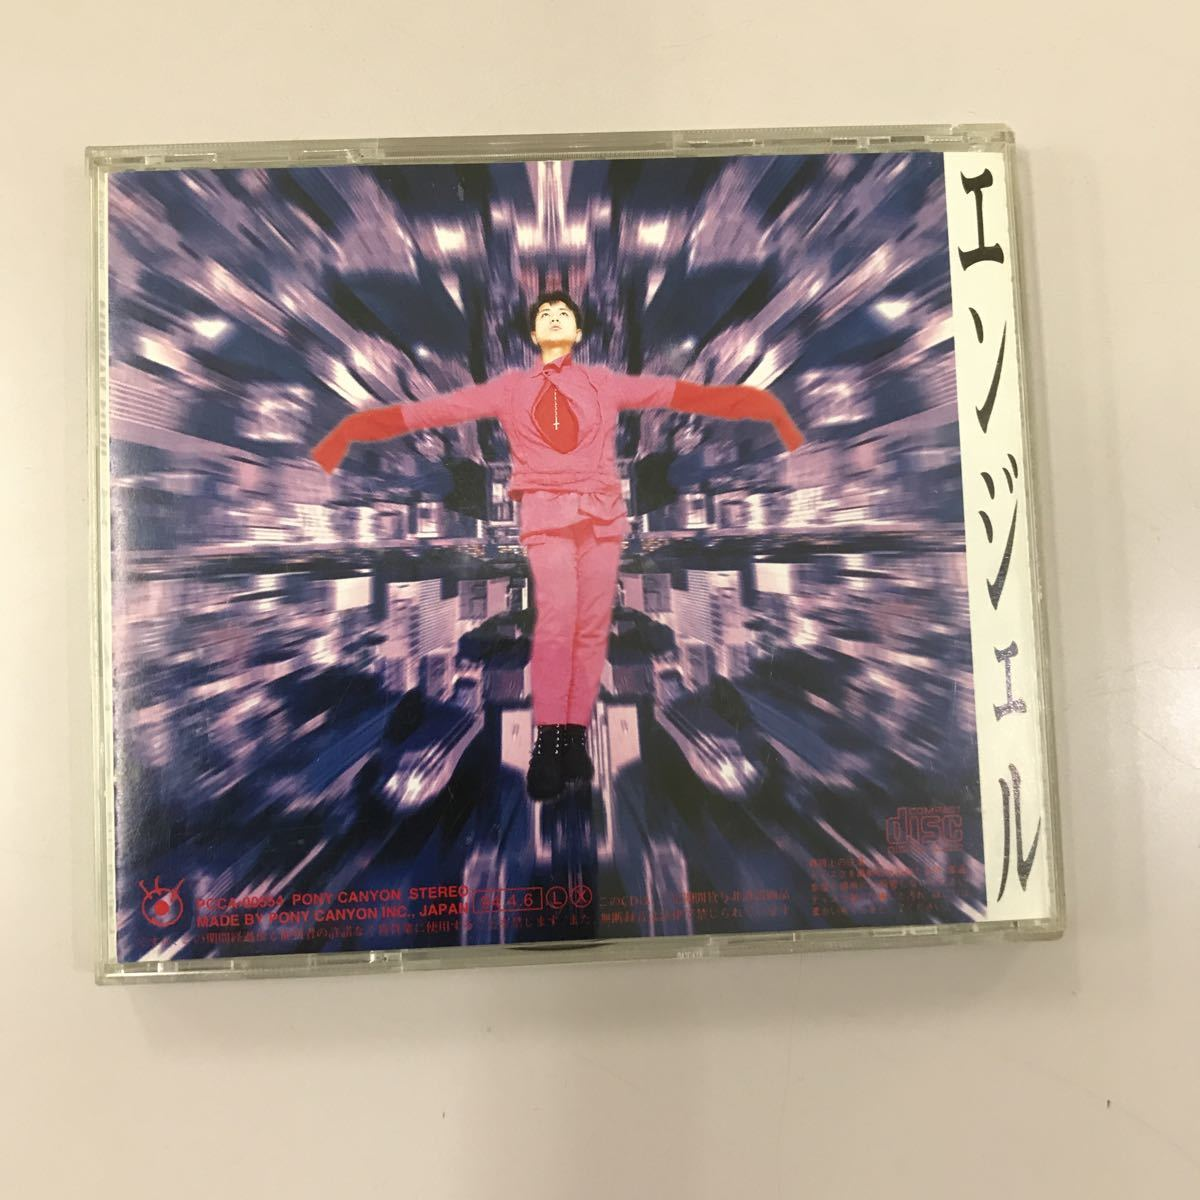 CD 中古☆【邦楽】藤井郁弥 エンジェル